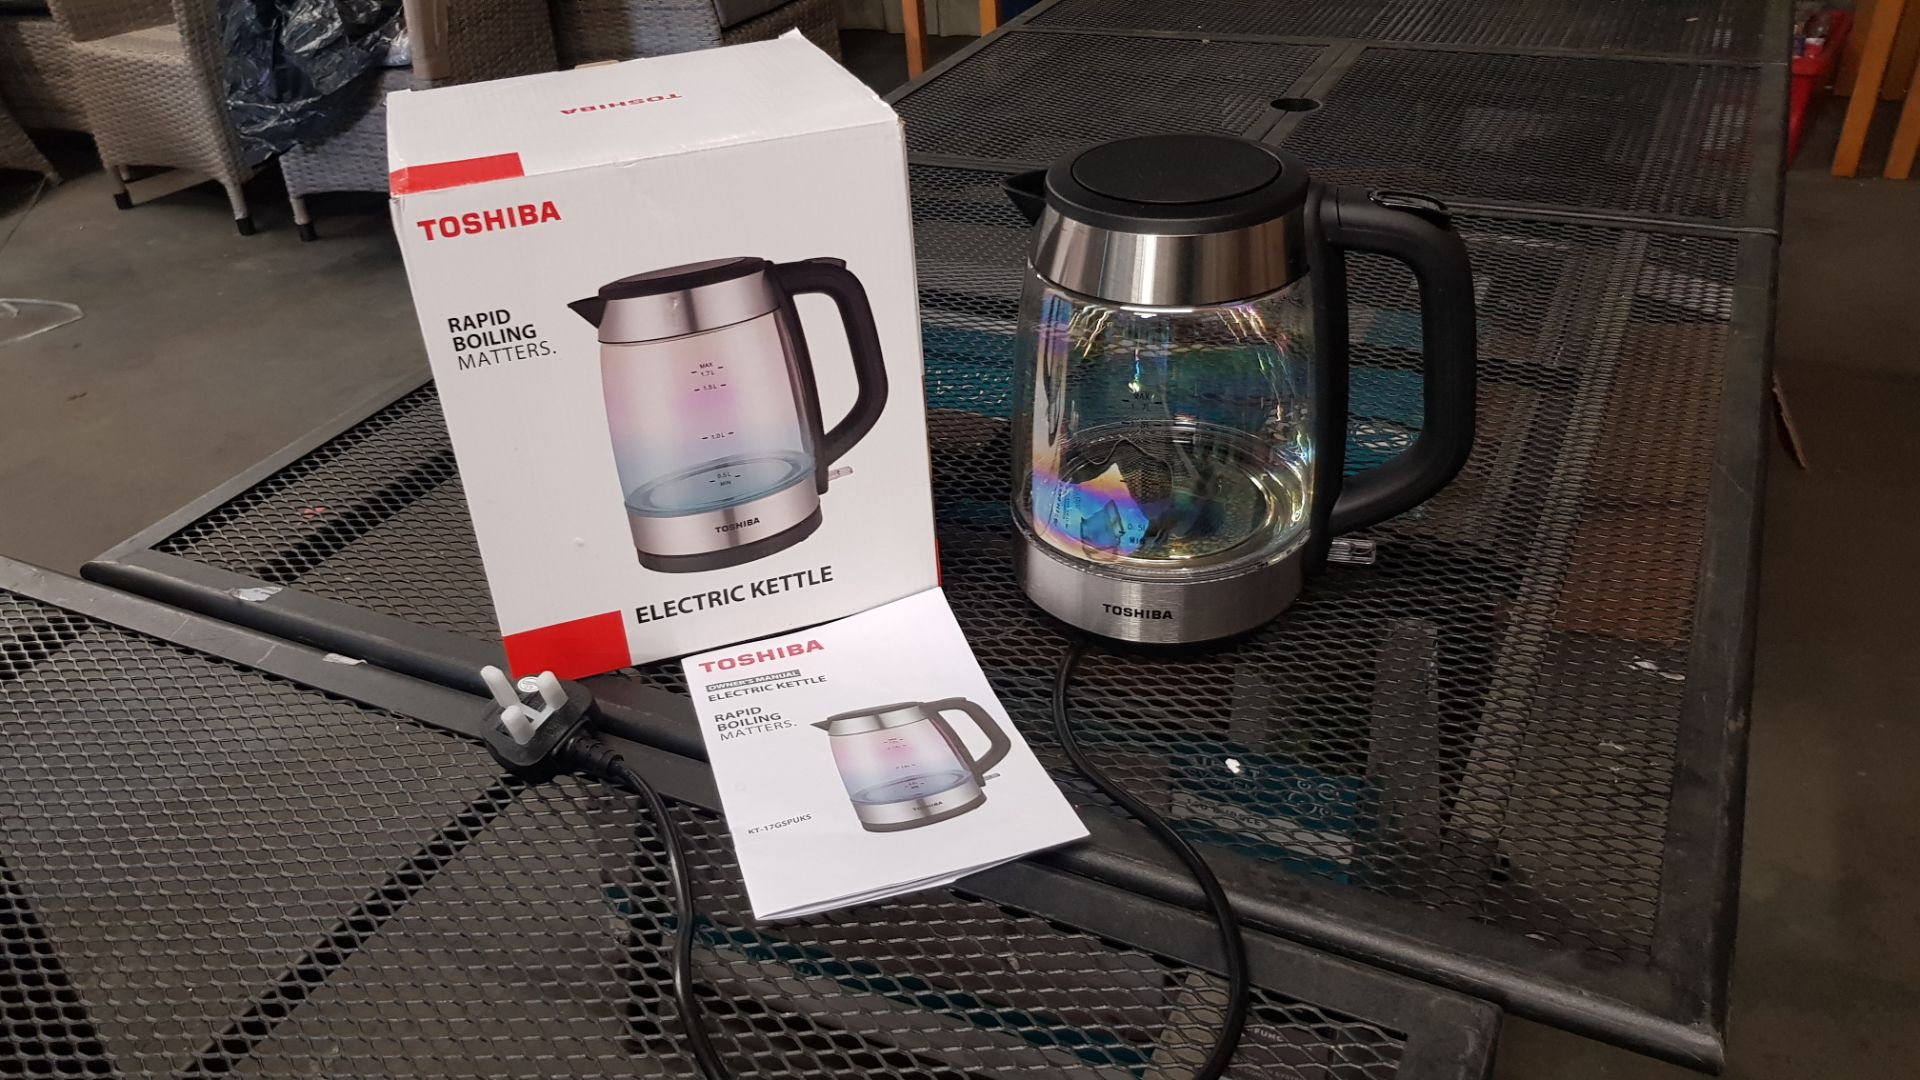 (15) 4x Items, 1x Toshiba Rapid Boiling Electric Kettle Cream. 1x Toshiba Rapid Boiling Electric Ke - Image 11 of 12